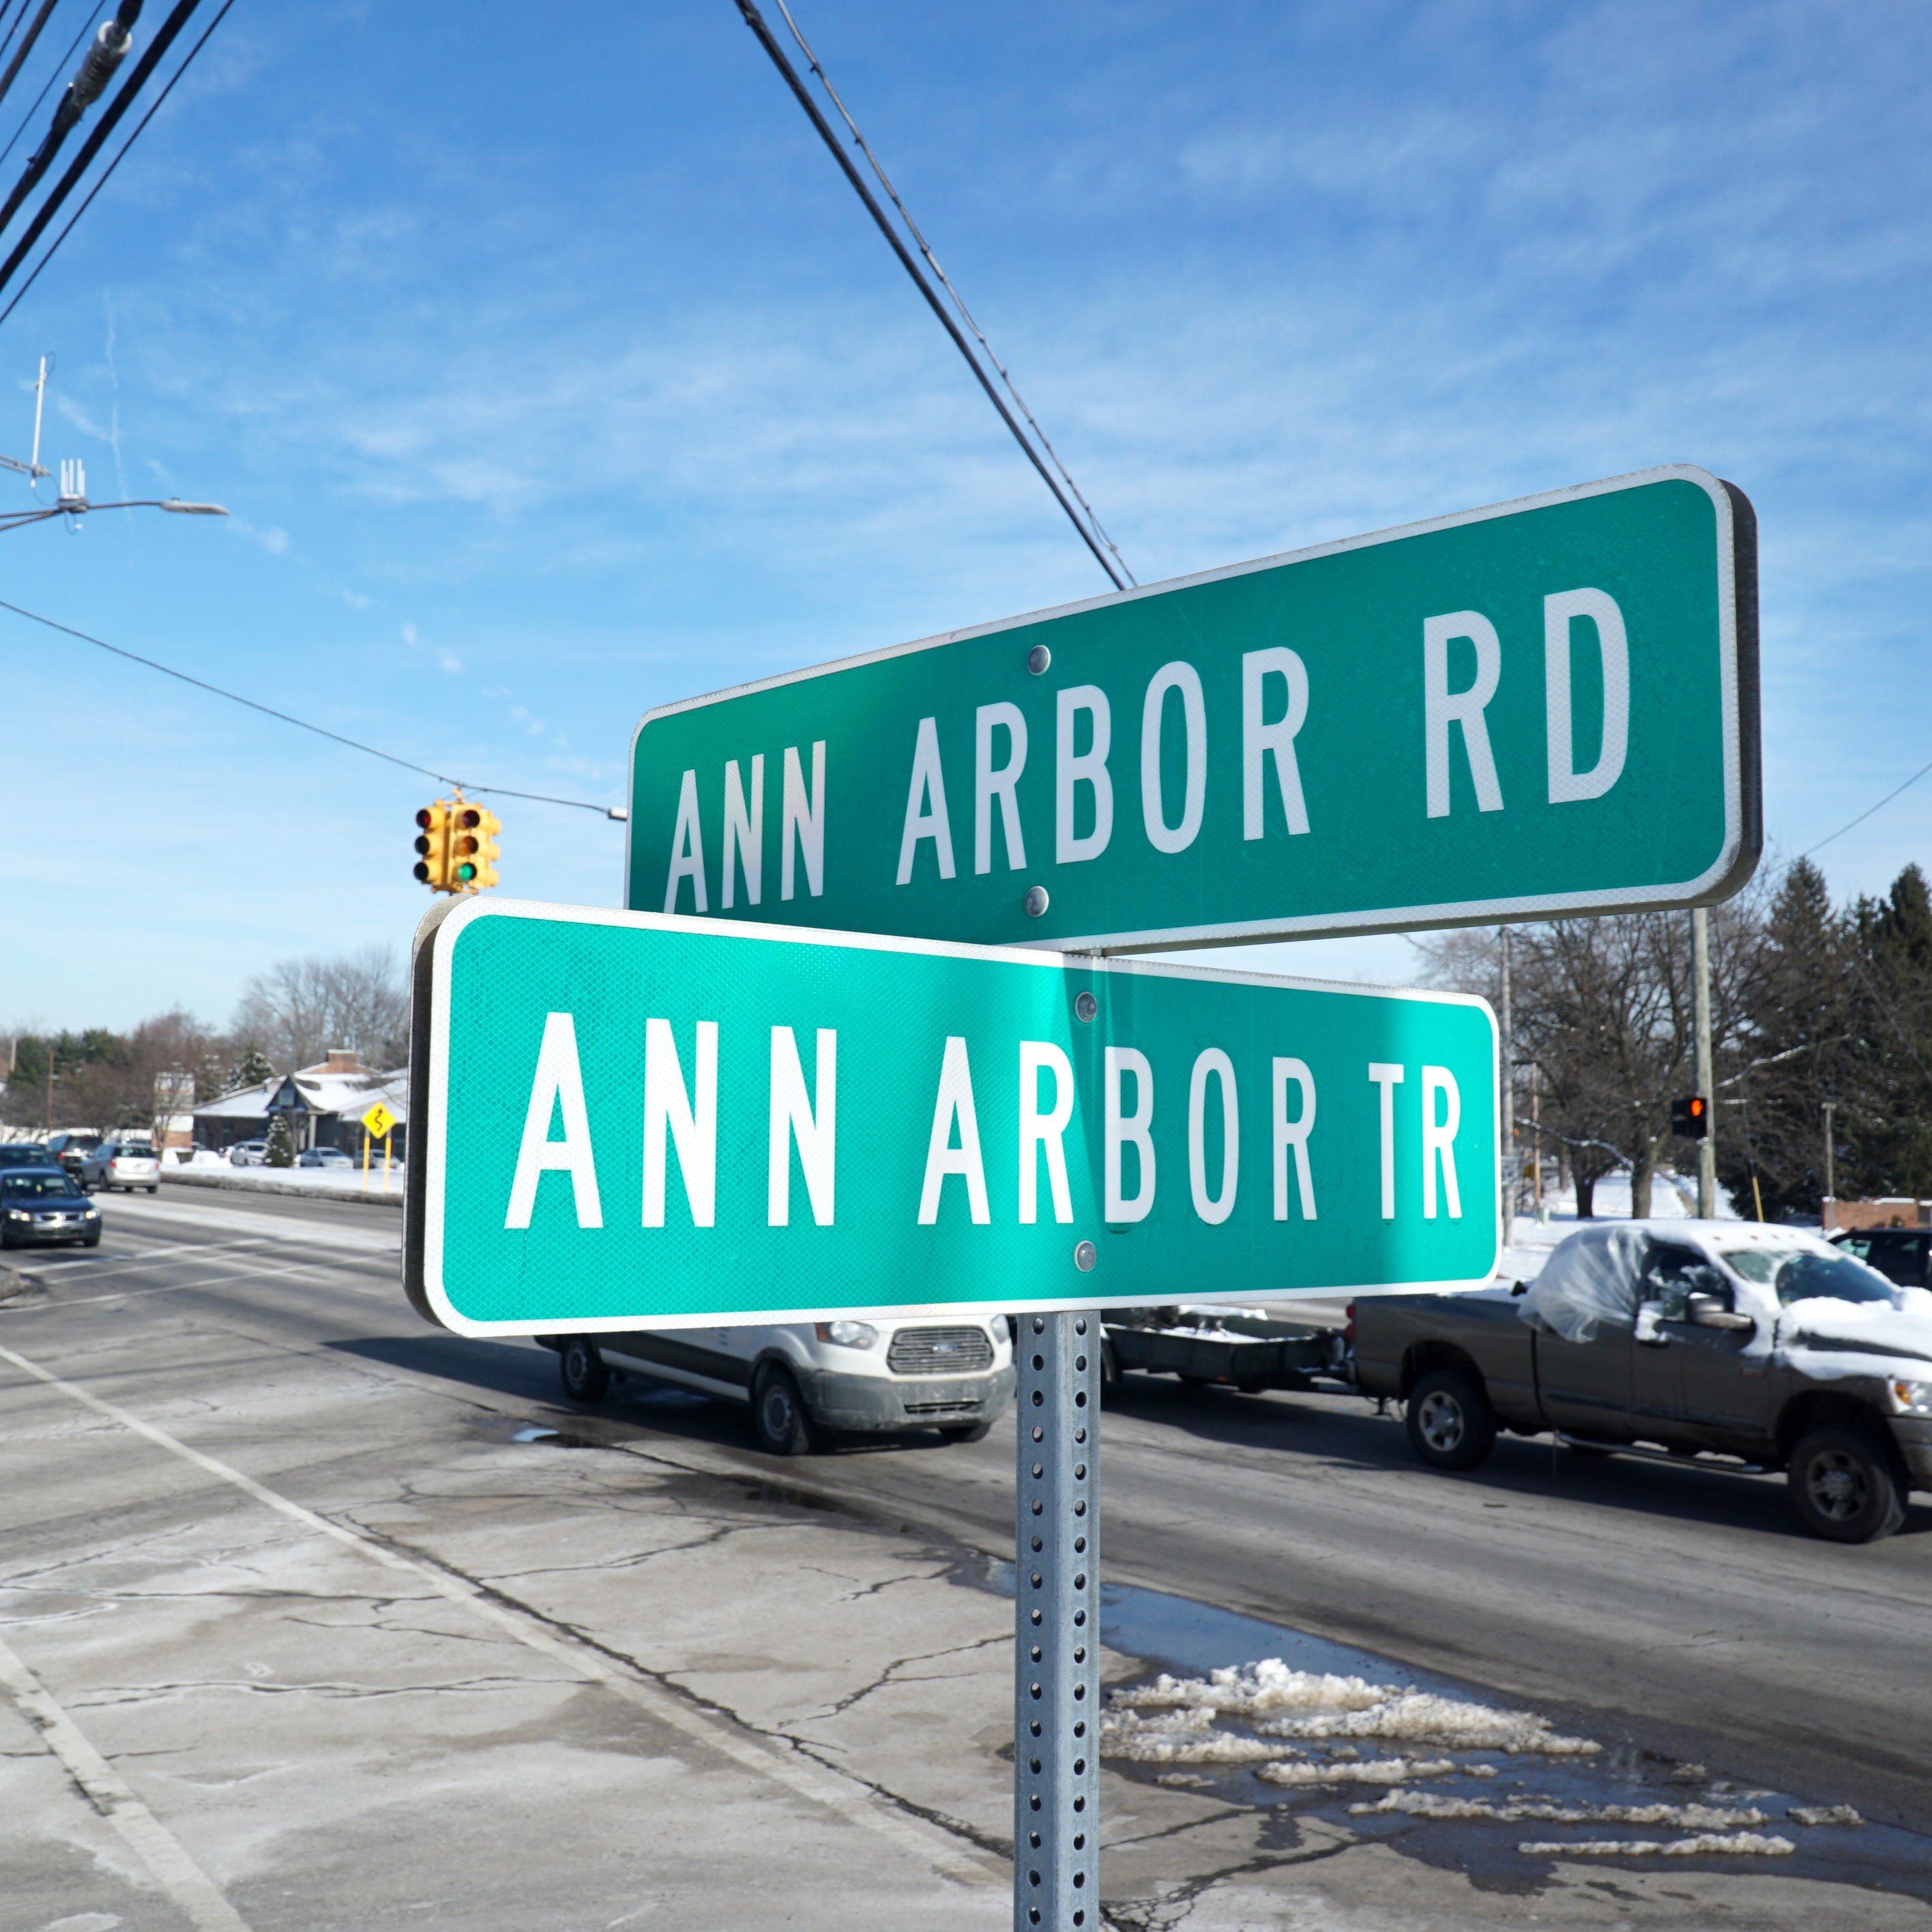 Ann Arbor Trail in Livonia seeing construction this summer